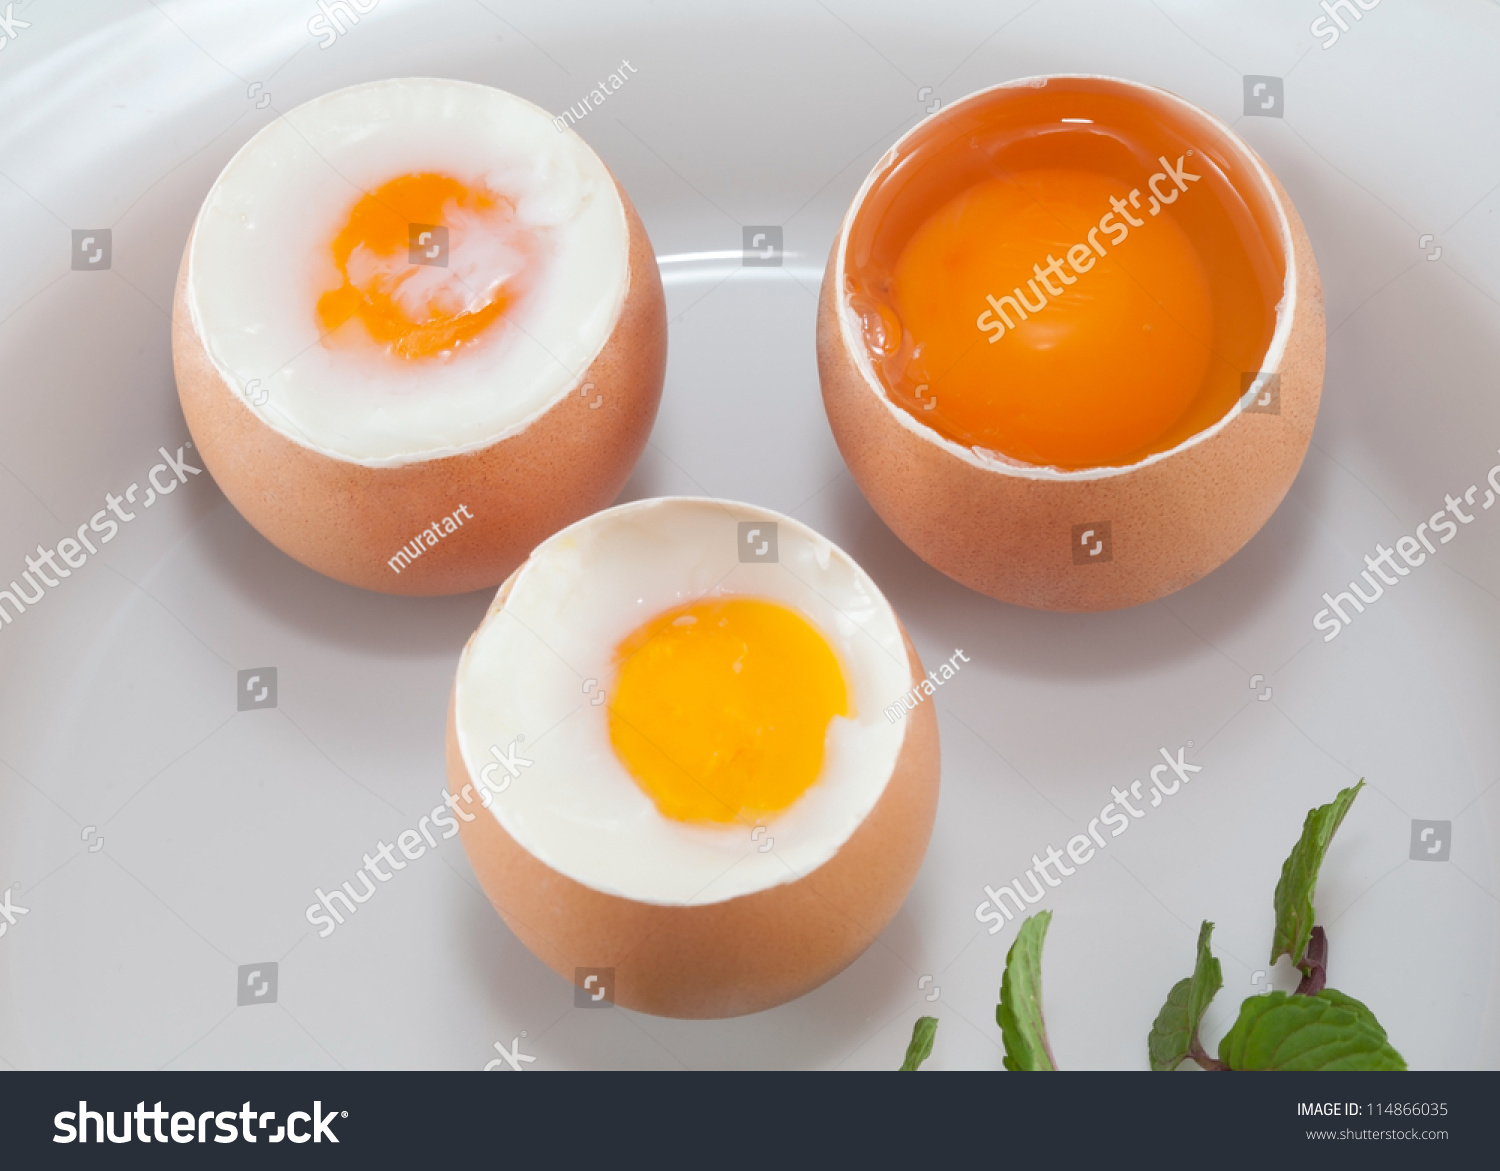 Raw Egg Soft Boiled Egg Boiled Stock Photo 114866035 - Shutterstock